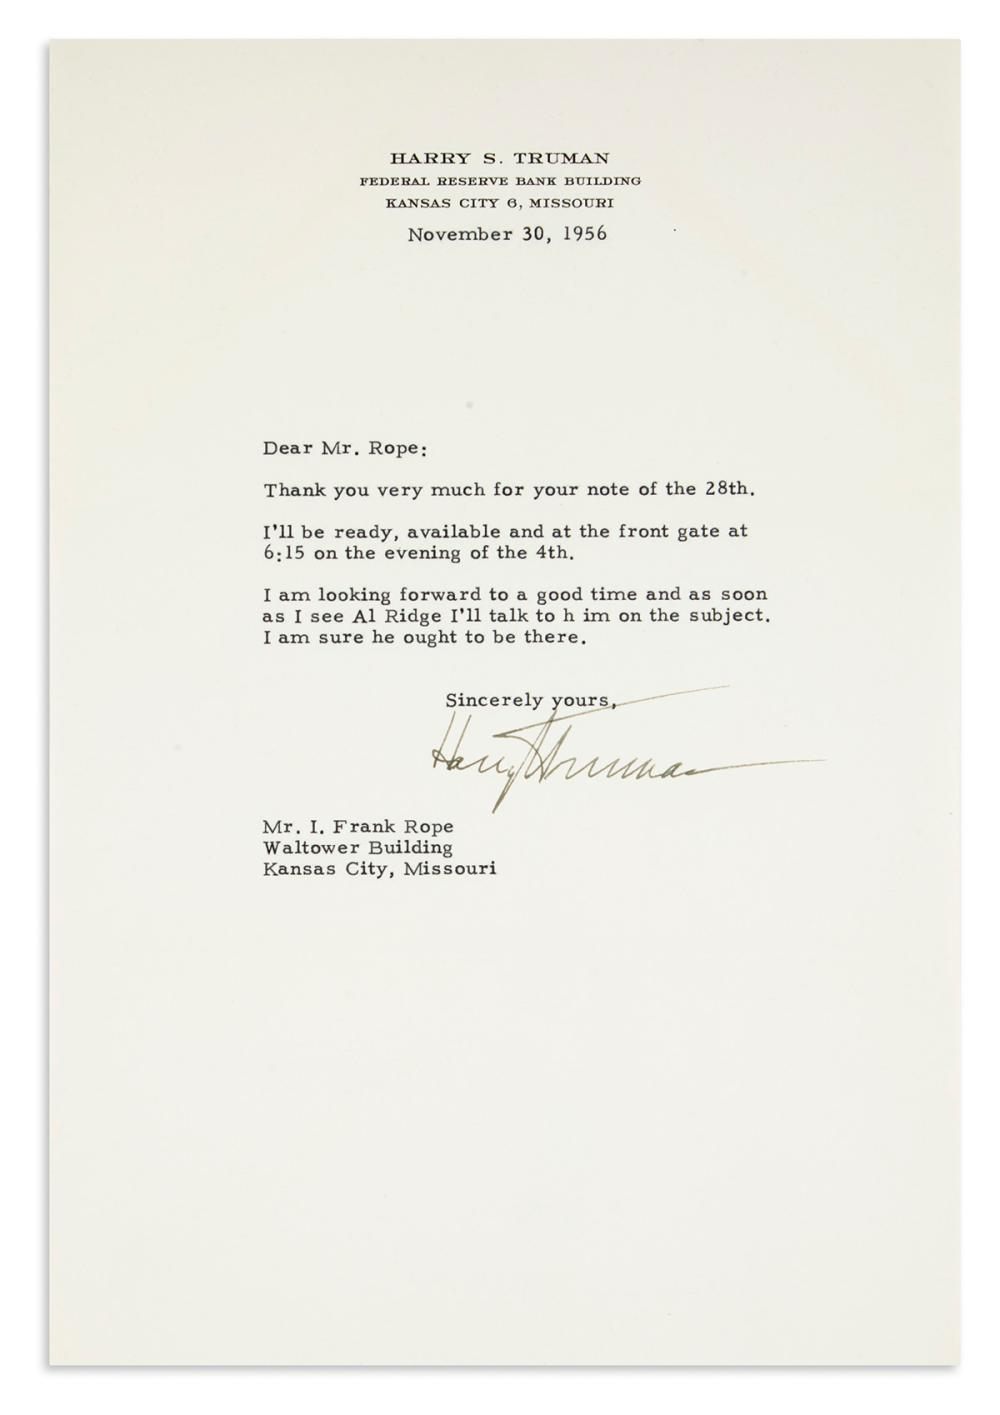 TRUMAN, HARRY S. Typed Letter Signed, to I. Frank Rope,